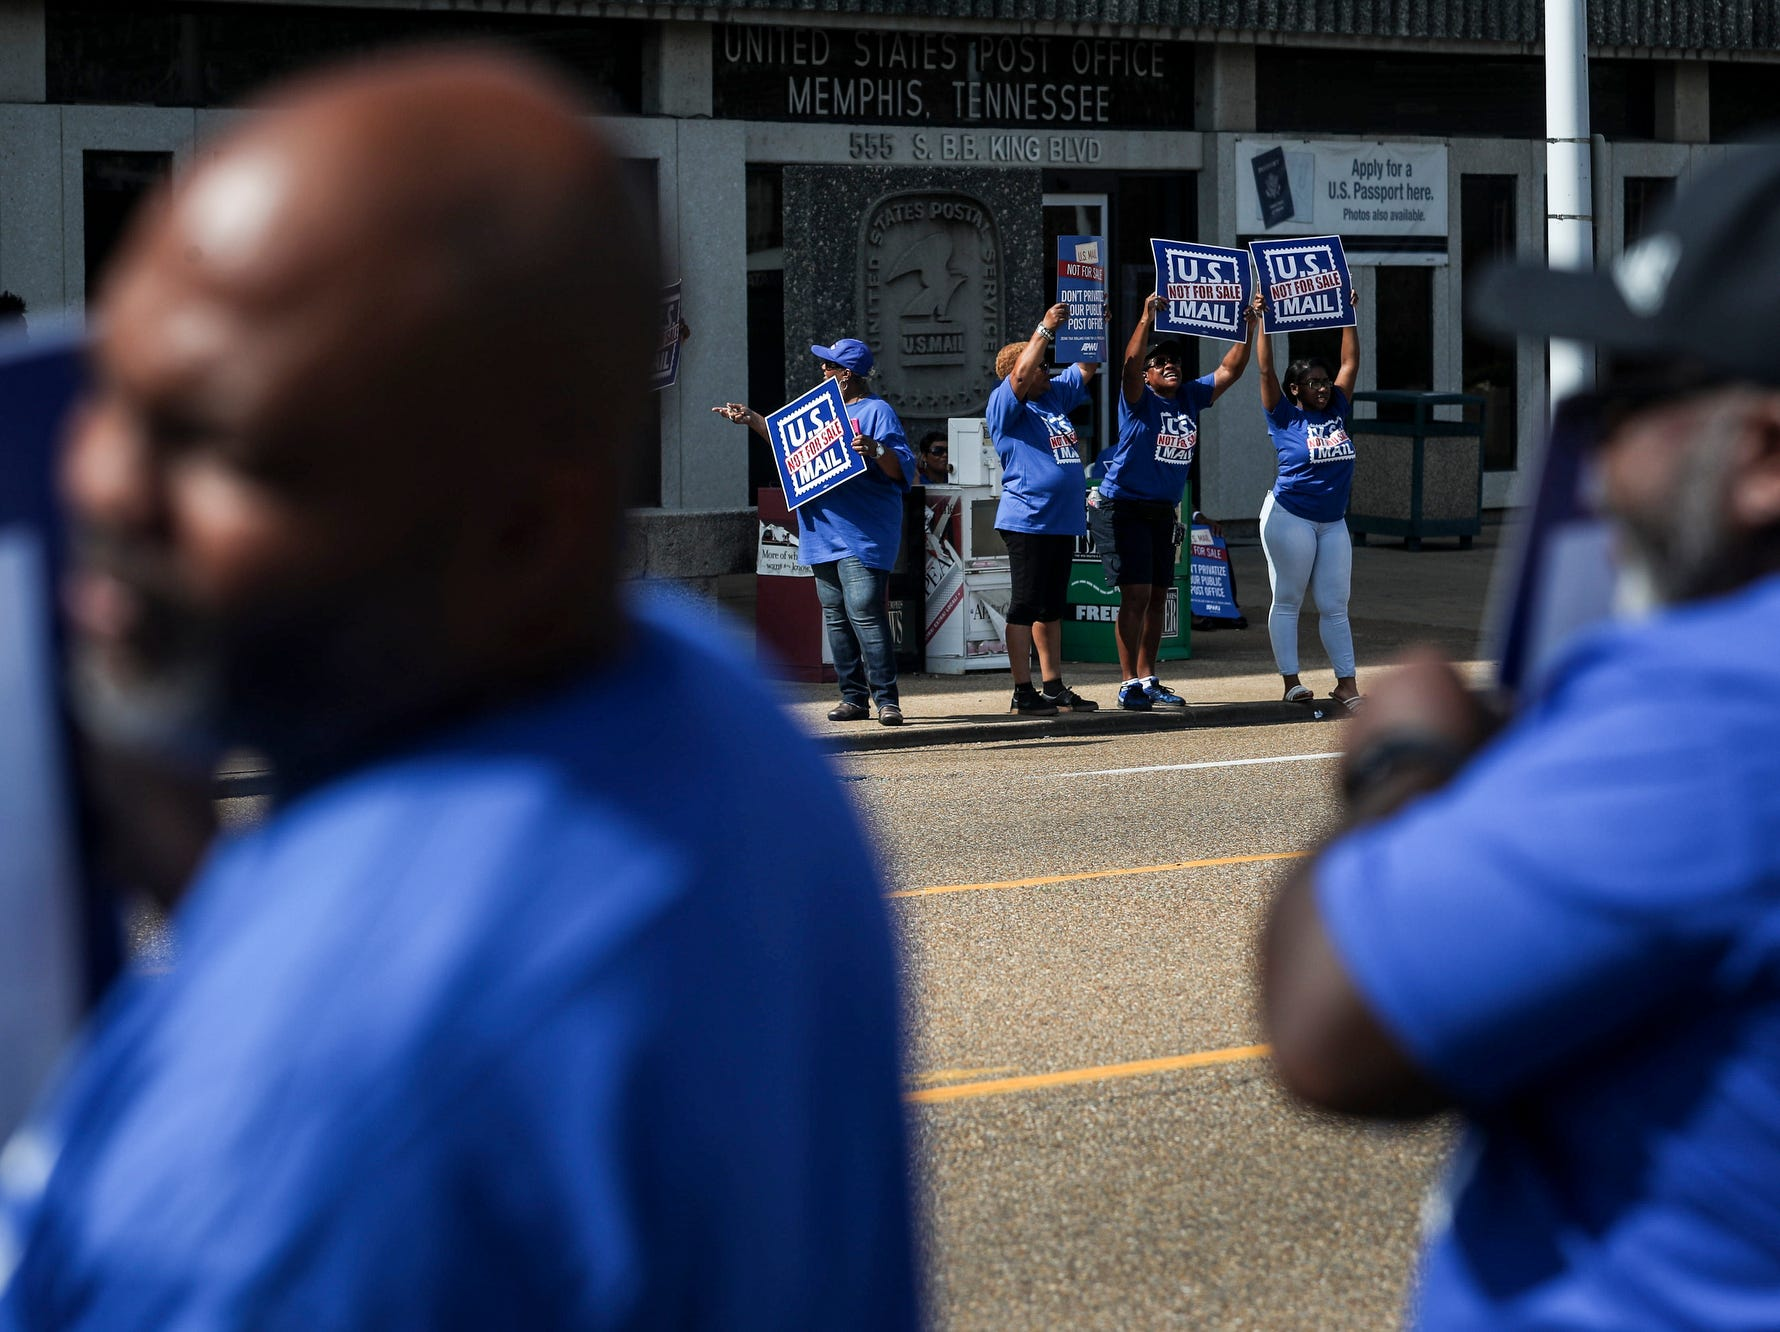 October 08 2018 - U.S. Postal Service employees, joined by community supporters, rallied on Monday in front of the Memphis Post Office. Participants sounded an alarm against a proposal announced in June by the White House's Office of Management and Budget to privatize the U.S. Postal Service.